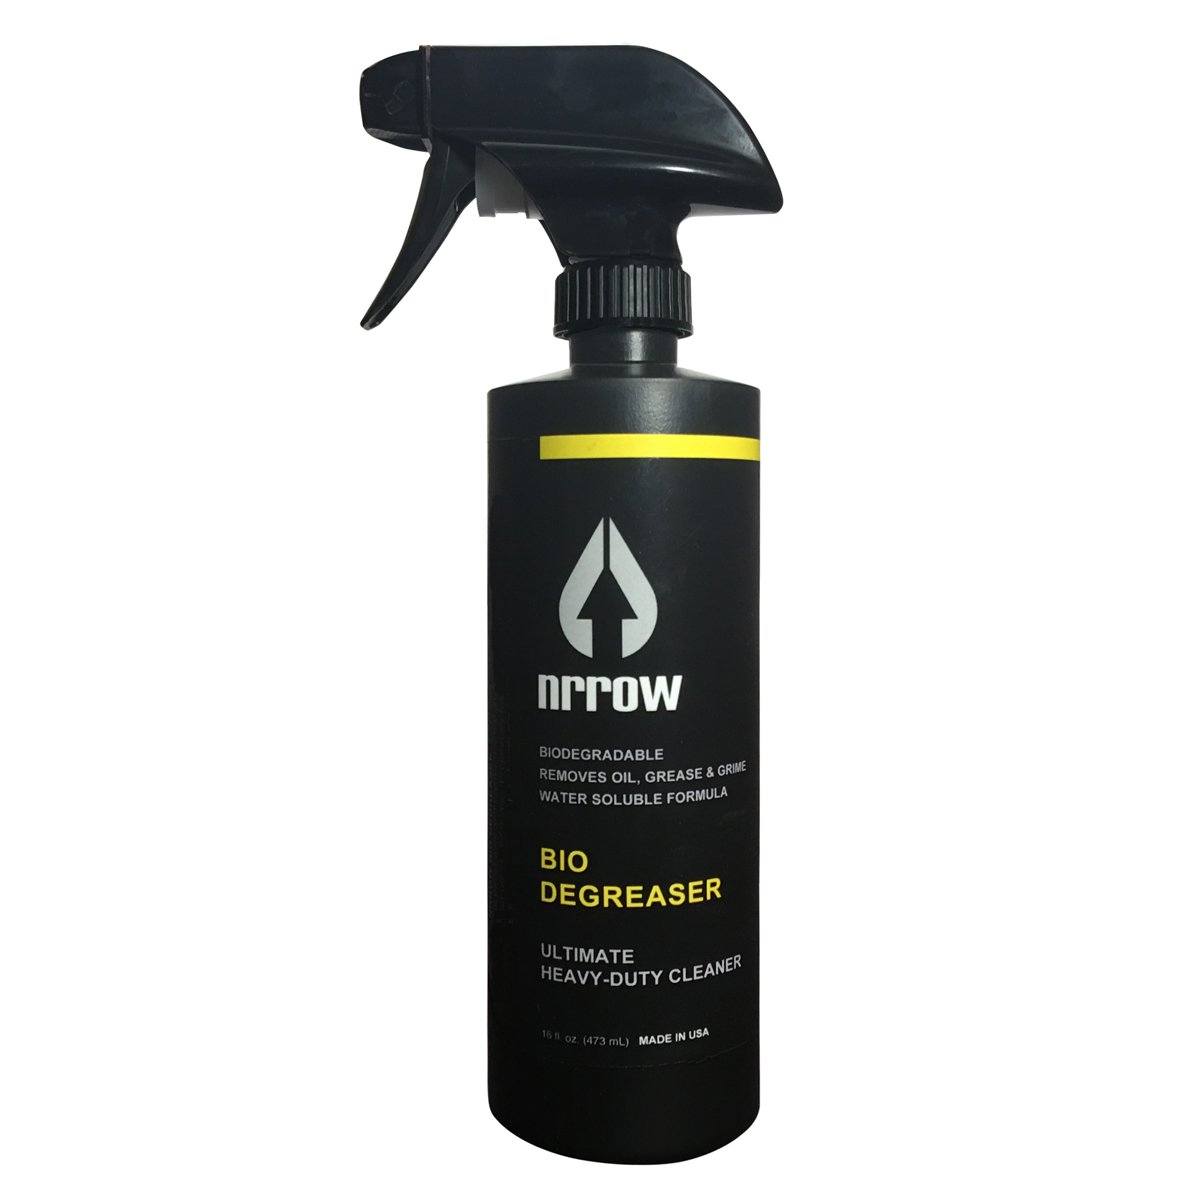 Nrrow - BIO DEGREASER, 16oz - Biodegradable Heavy-Duty Bike Chain and Drivertrain Degreaser for MTB, Road Bikes, Cyclocross and BMX